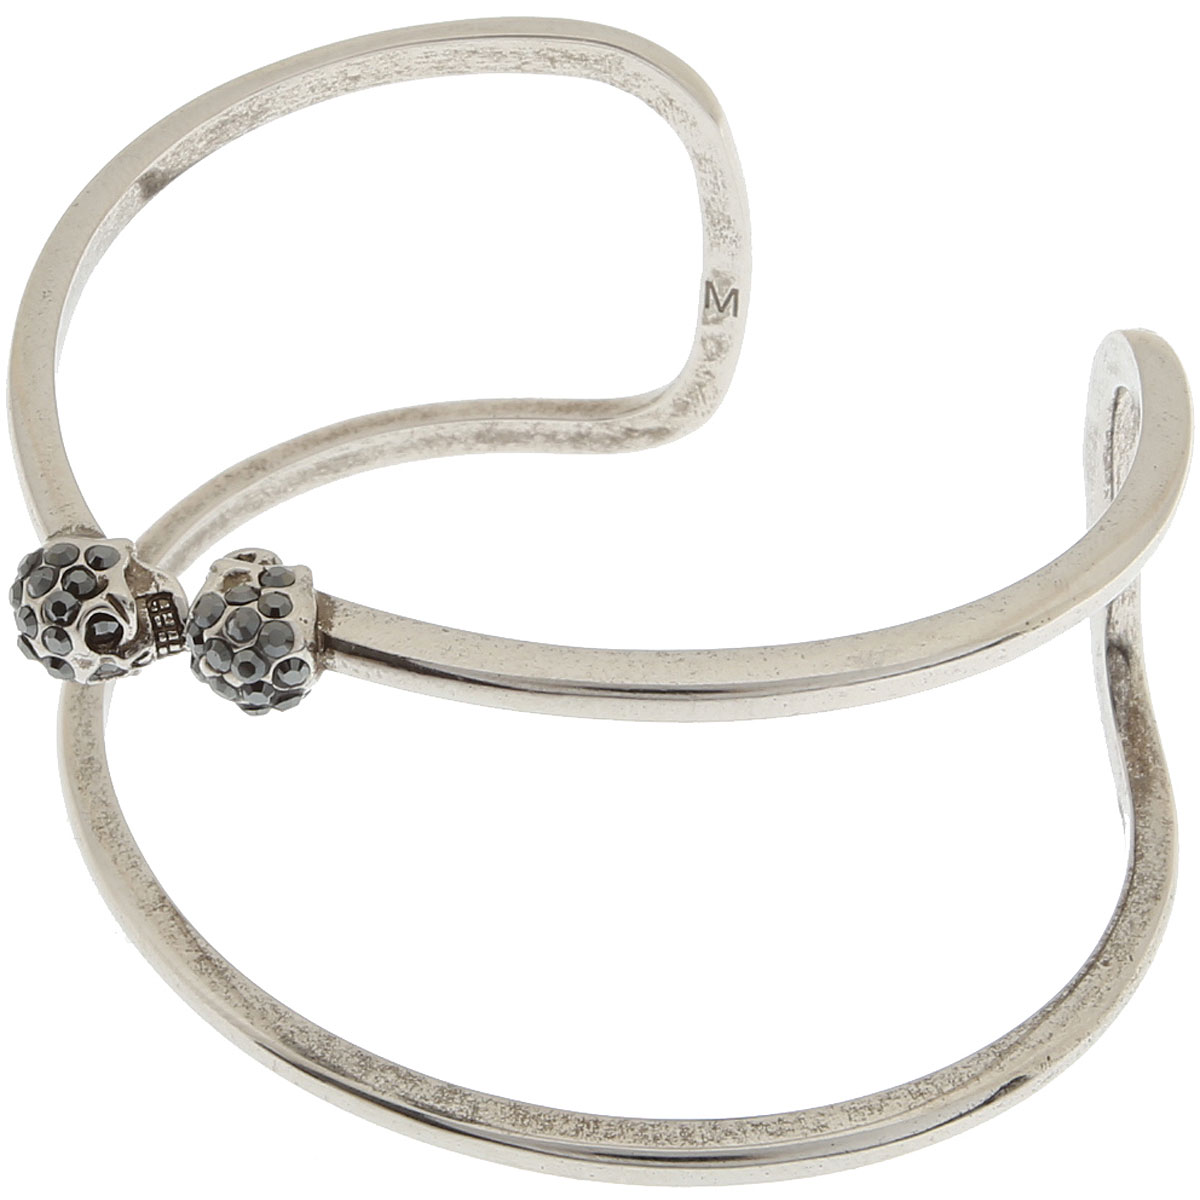 Alexander McQueen Bracelet for Women On Sale, Silver, Brass, 2019, Small - Medium Medium - Large